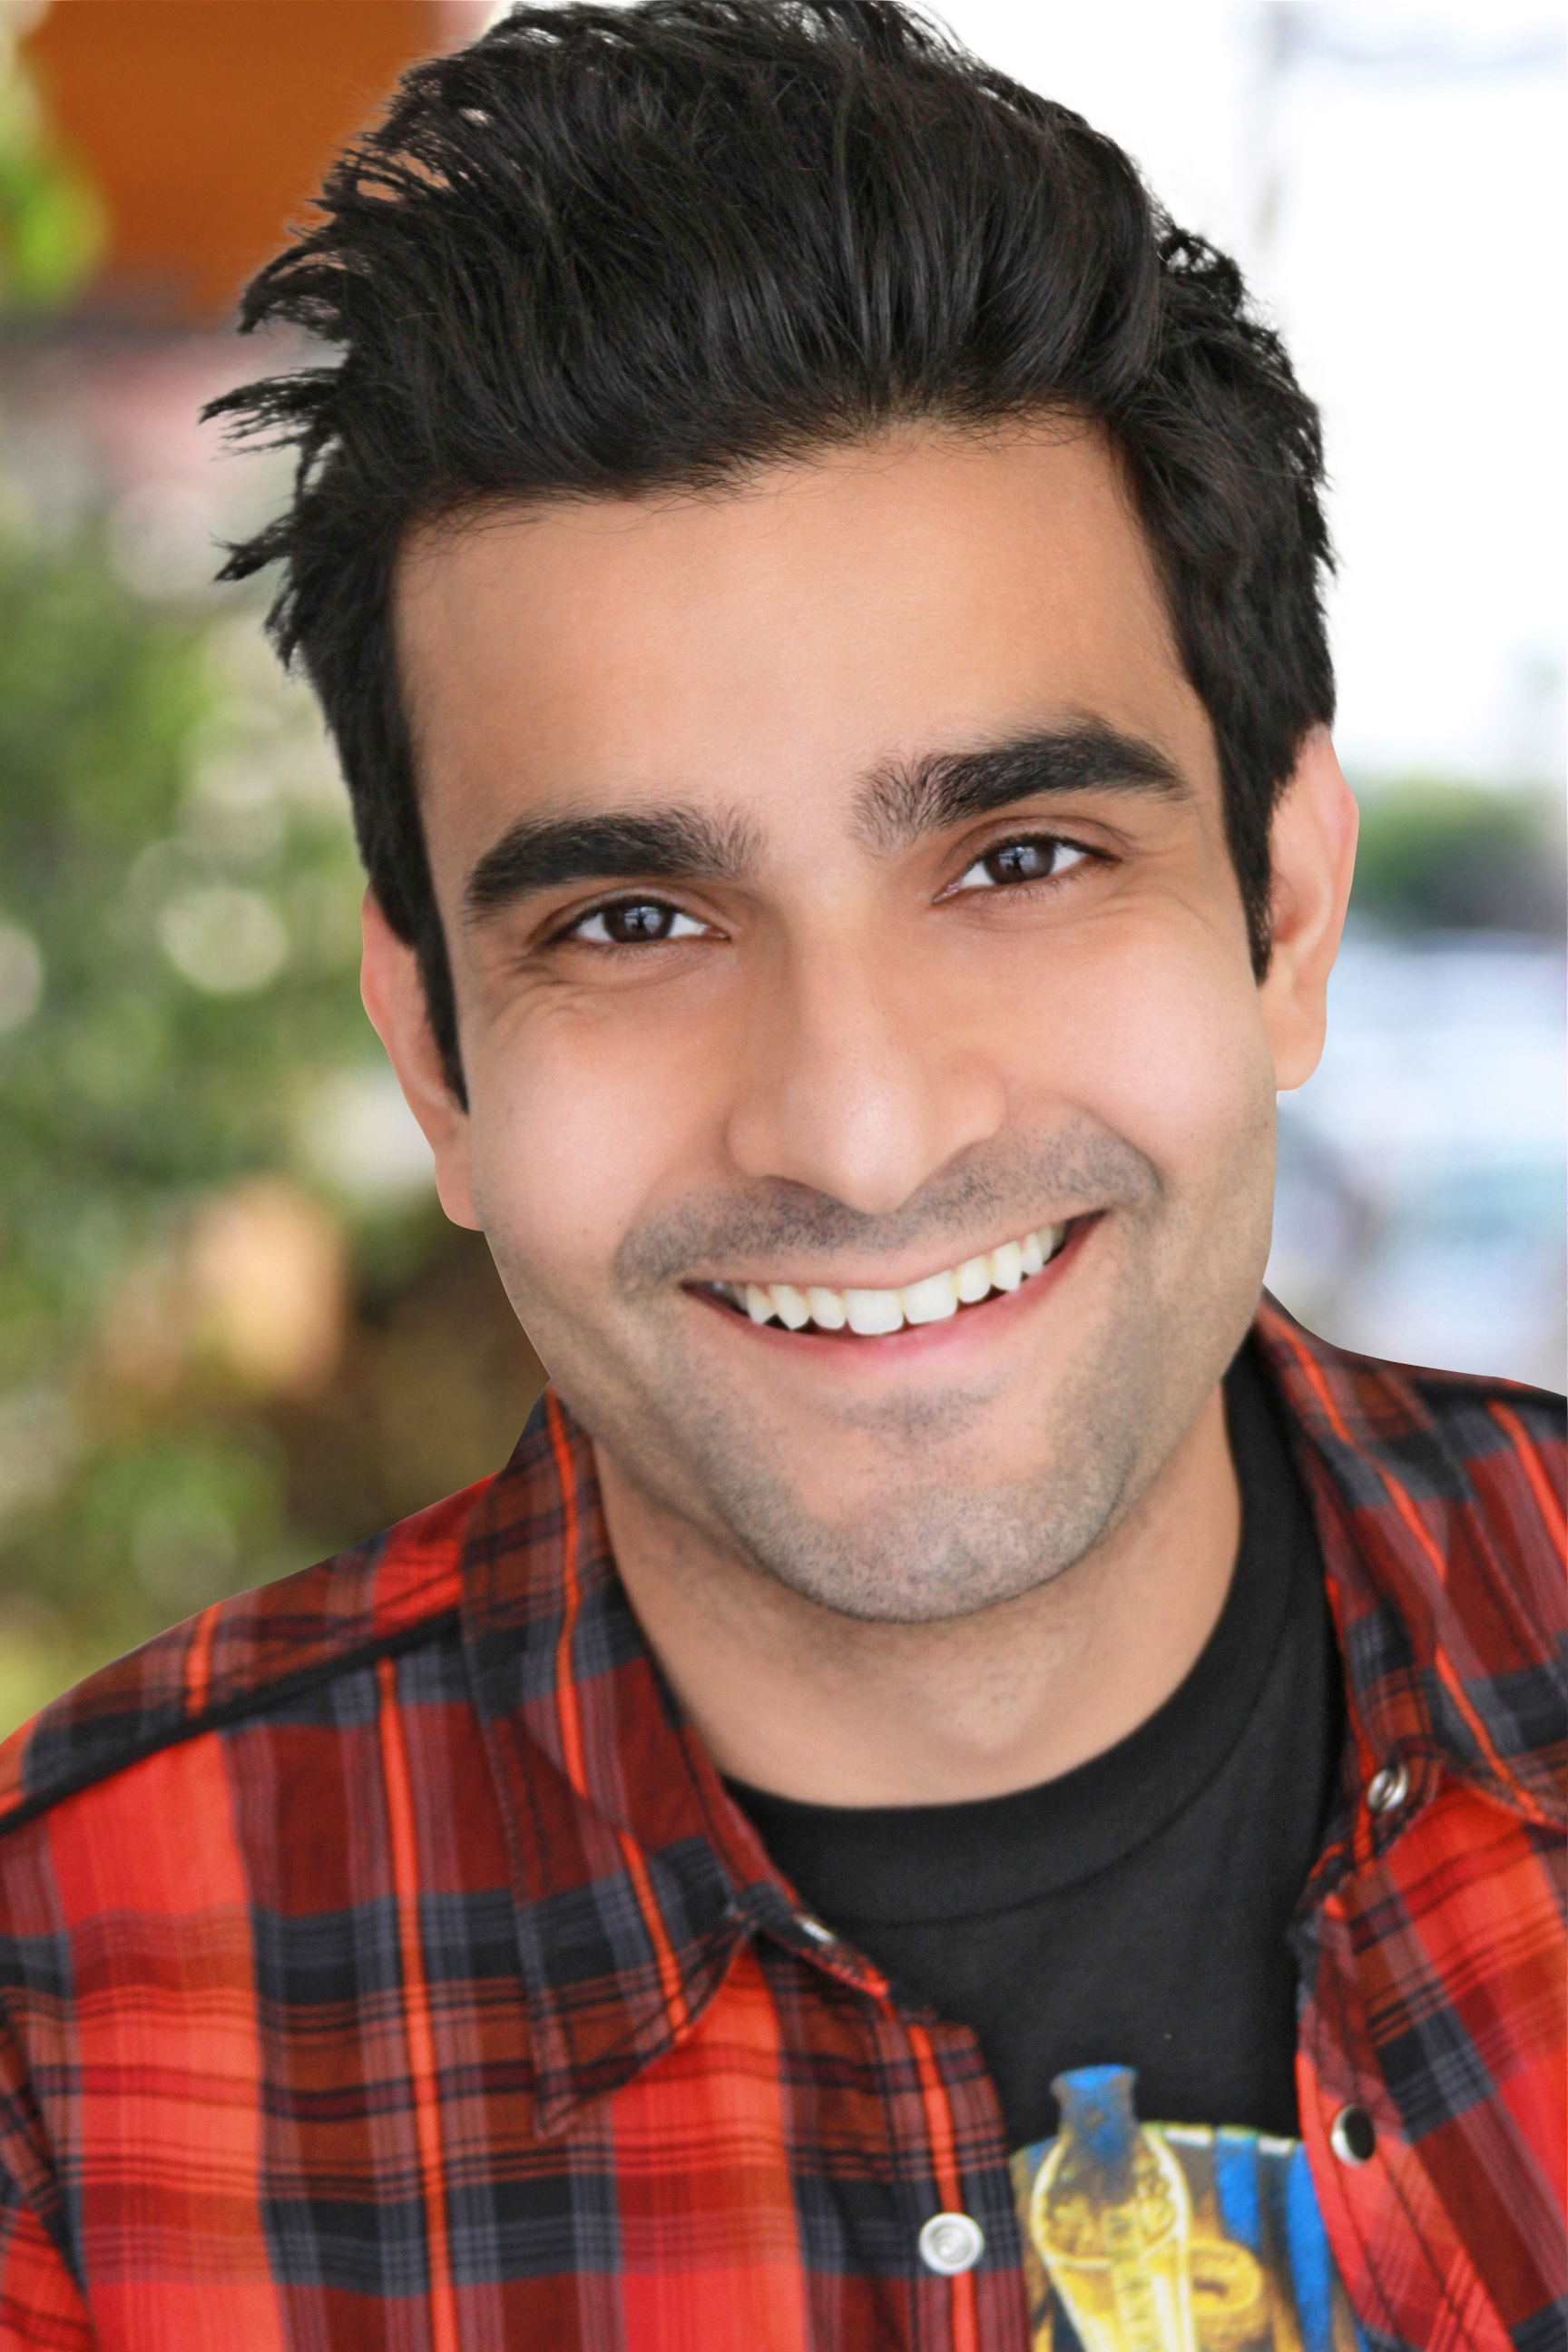 DHRUV UDAY SINGH - Actor, writer, comedian, director, improviser, and other things you can just say you are.